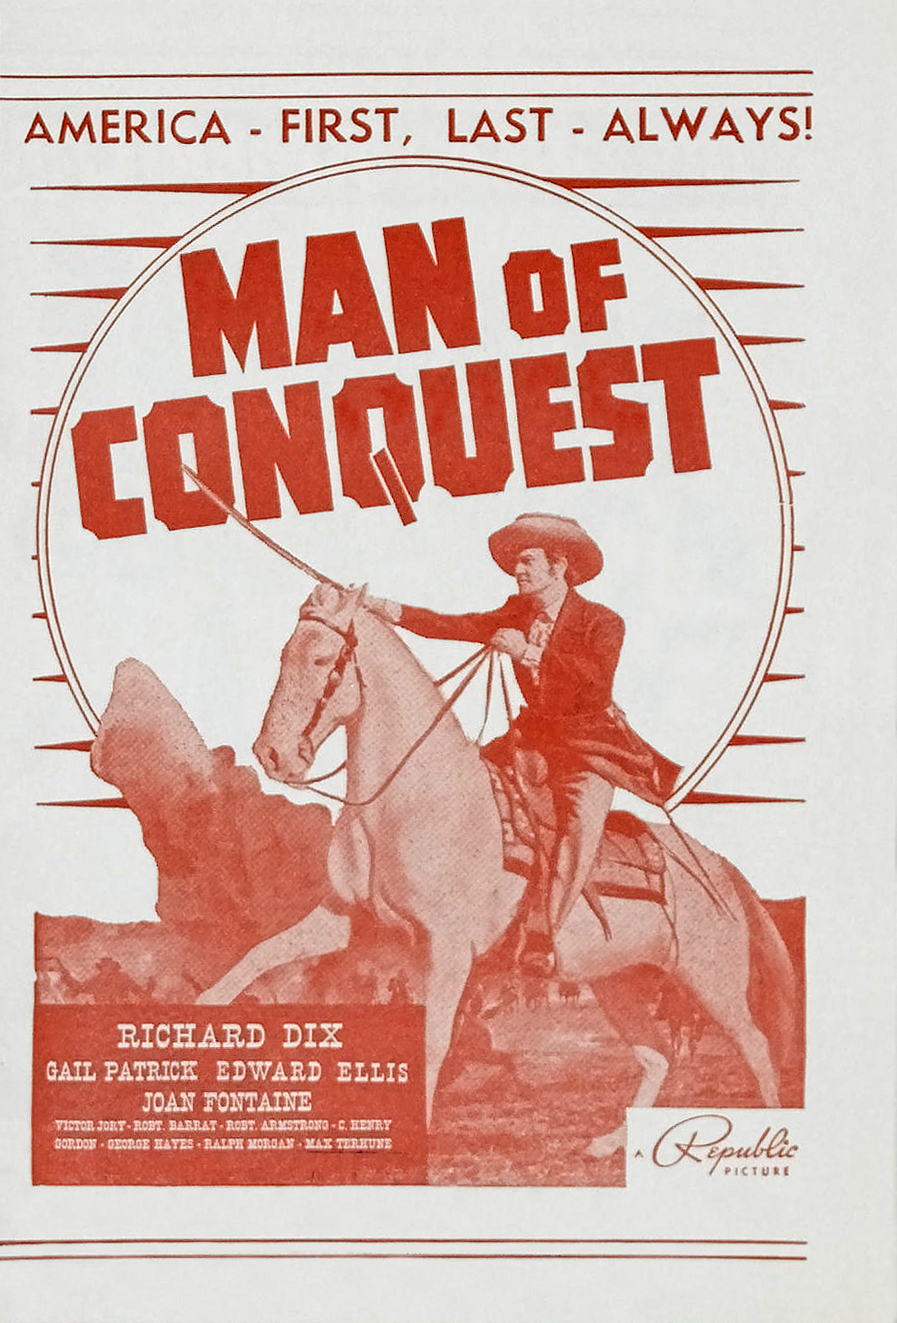 Richard Dix in Man of Conquest (1939)